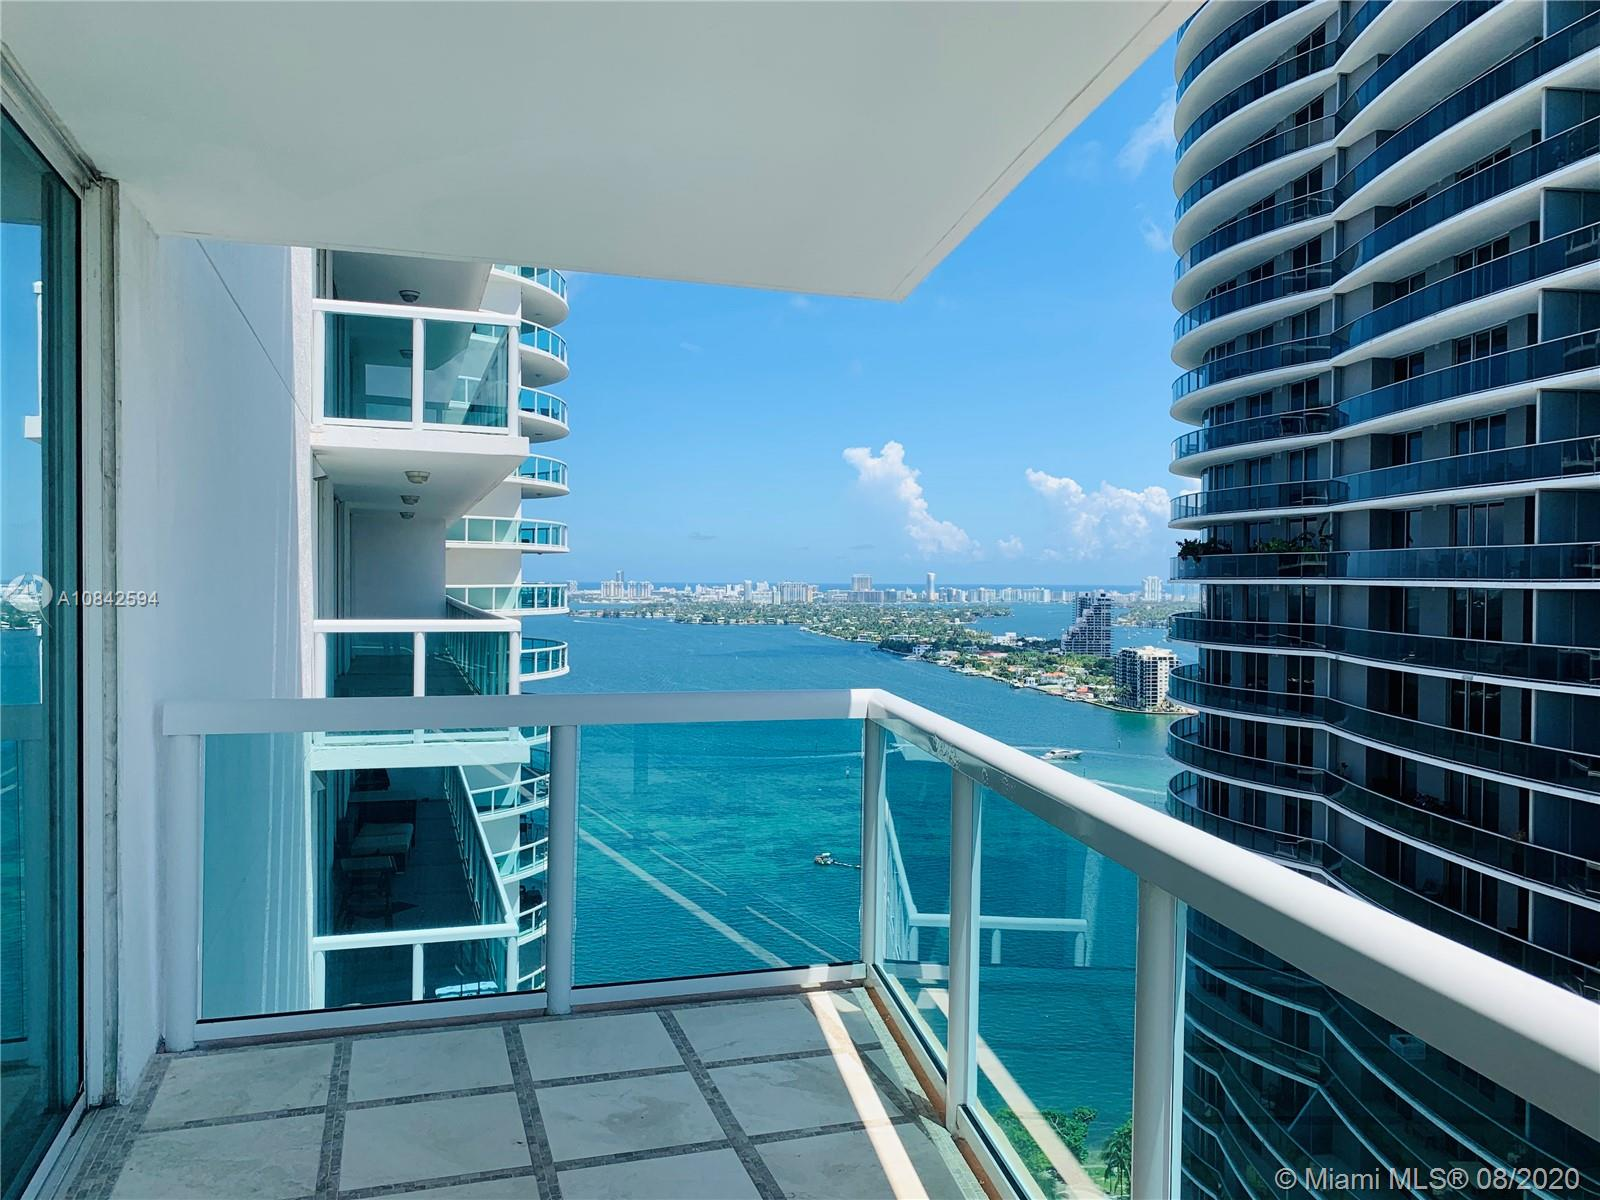 """For rent preferably only for 6 months. Amazing and upgraded apartment at the 1800 Club in Biscayne Blvd. Featuring 2 bedroom + PLUS DEN (spacious and closed) which can be used as """"ANOTHER ROOM"""" and 2 Bathroom. Two beautiful open balconies overlooking the bay and the city skyline! Building amenities includes Gym, Sauna, Steam Room, Game Room, Party Room, Common Areas, Heated Pool, SPA, BBQ Area, Fiber optic wiring in the entire building, free wifi available inside the building. Concierge Services, Valet parking. Includes wifi, cable/tv, water and trash. All closets are made of wood. PLUS: With extra storage space on the 6th floor. Located across the amazing Margaret Pace Park! It is also available for sale MLS A10713166  $519,900. You can see all the photos"""